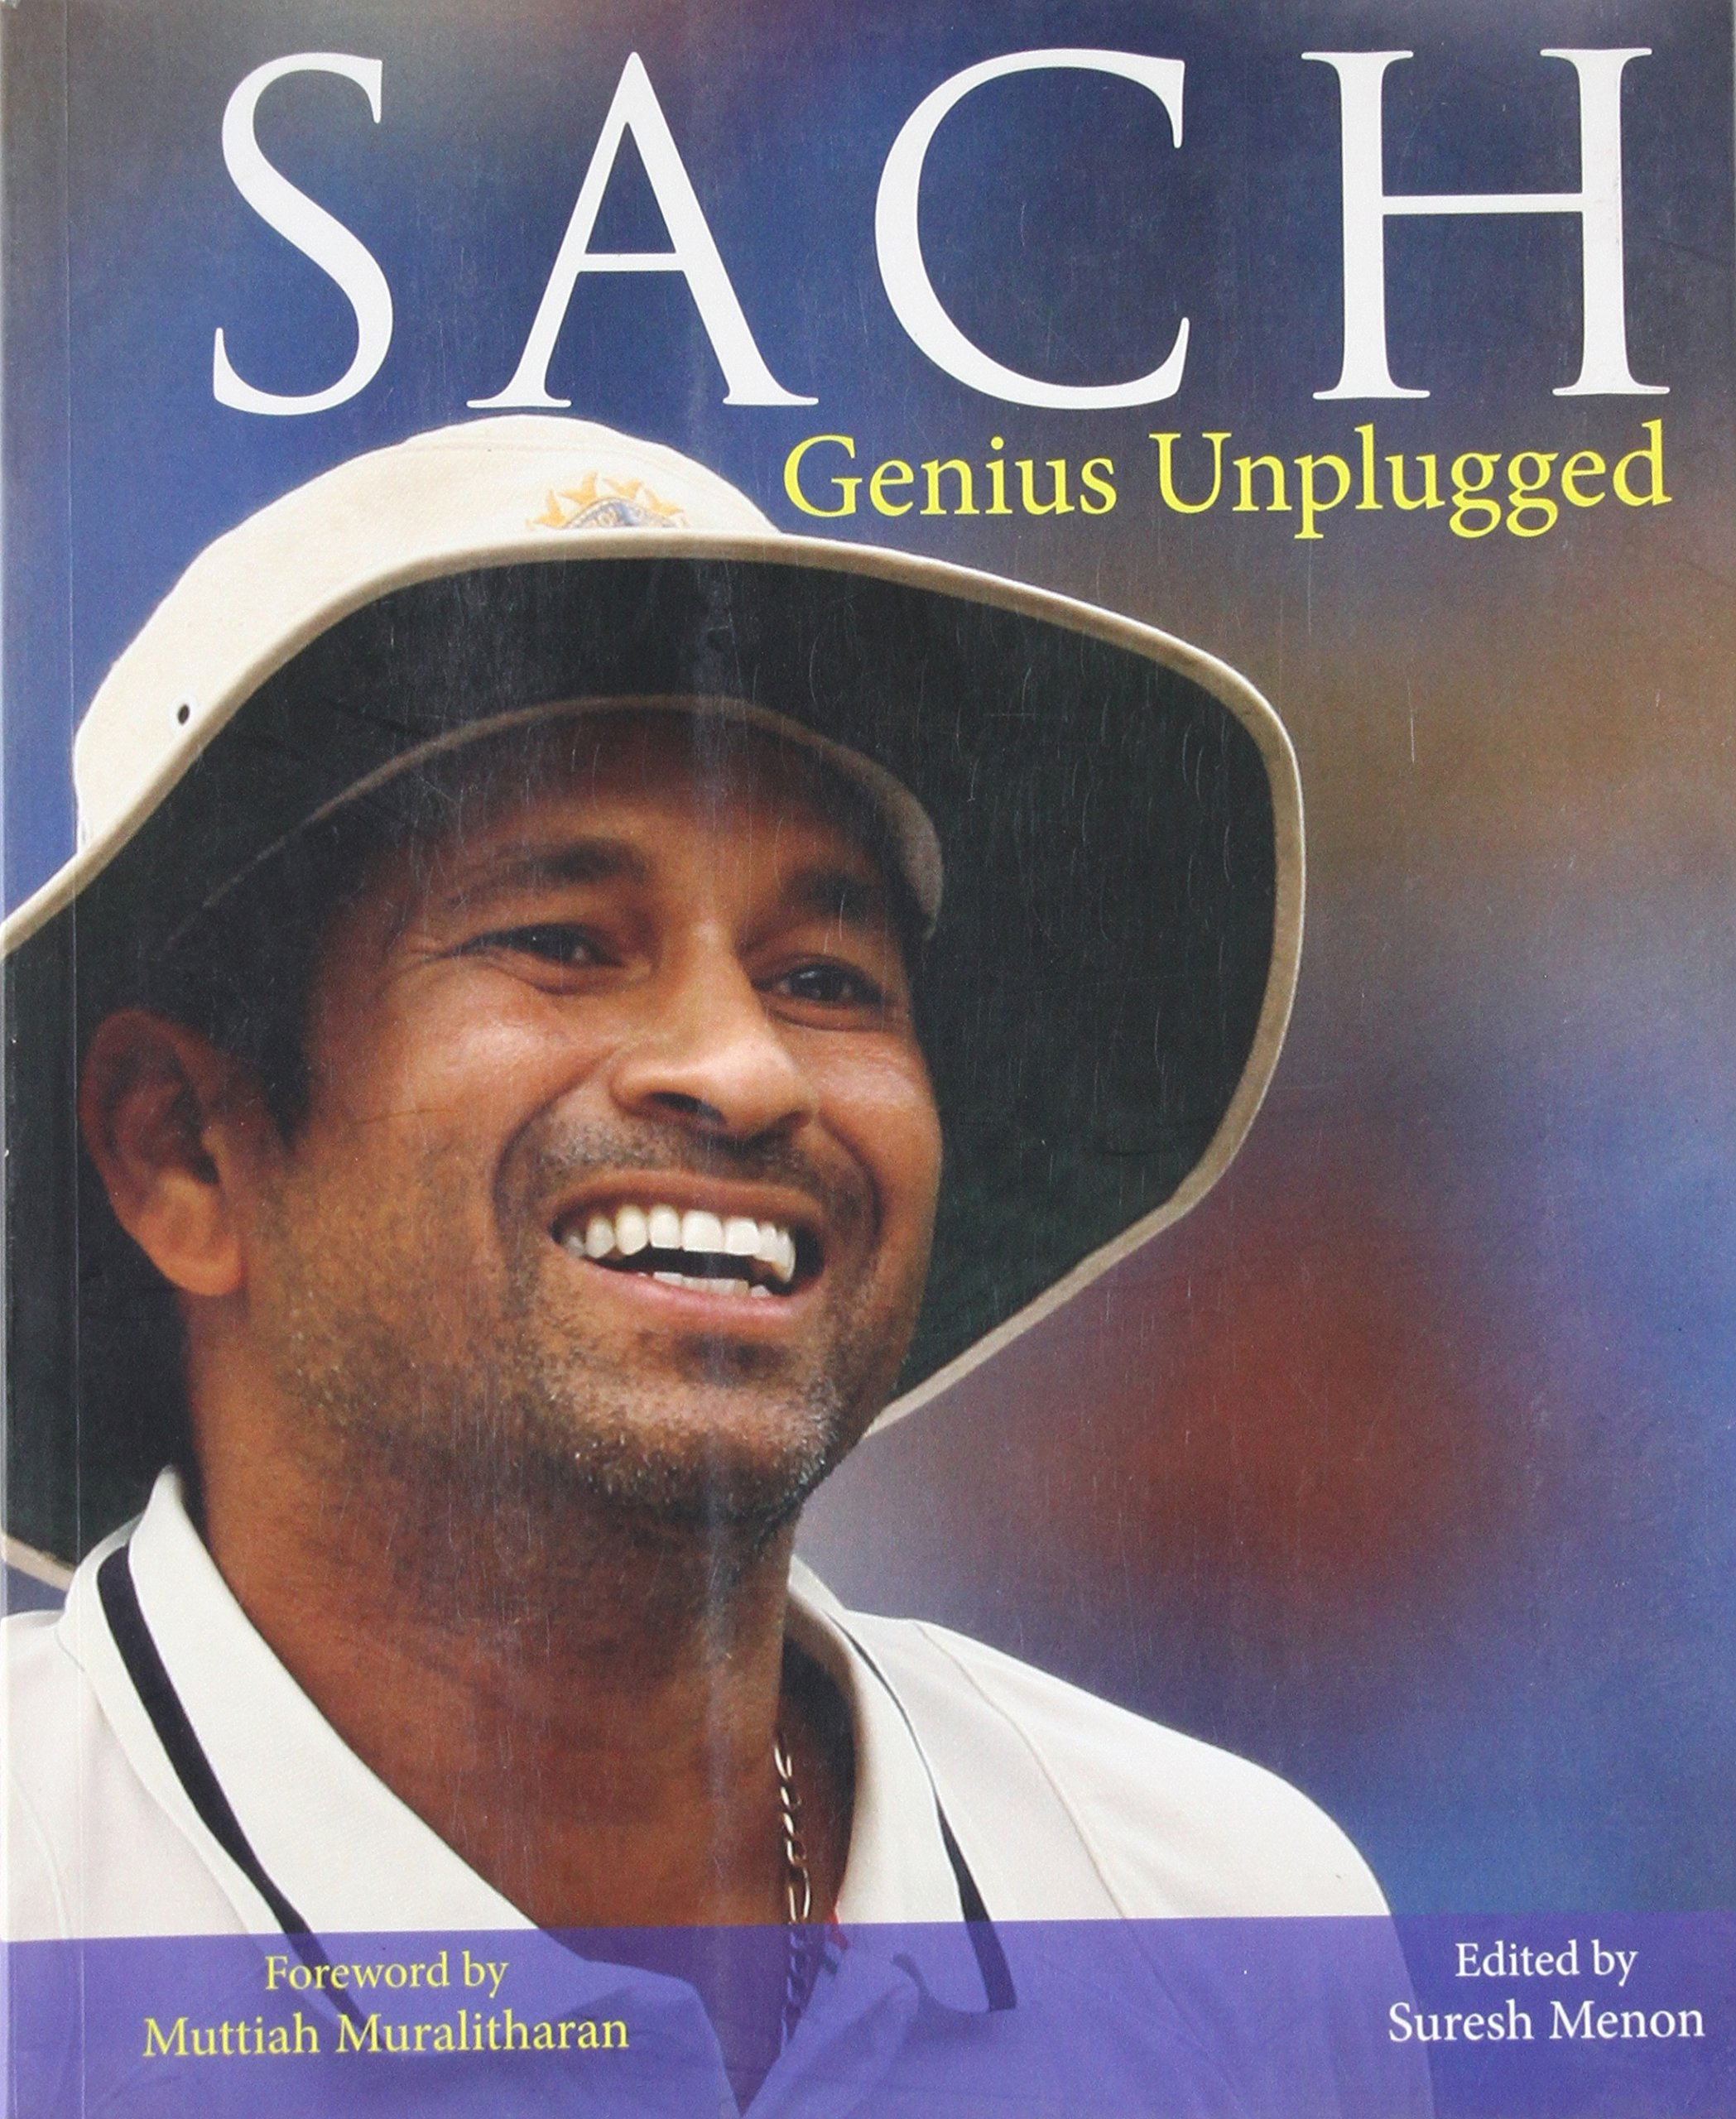 Sachin Genius Unplugged by Motilal UK Books of India